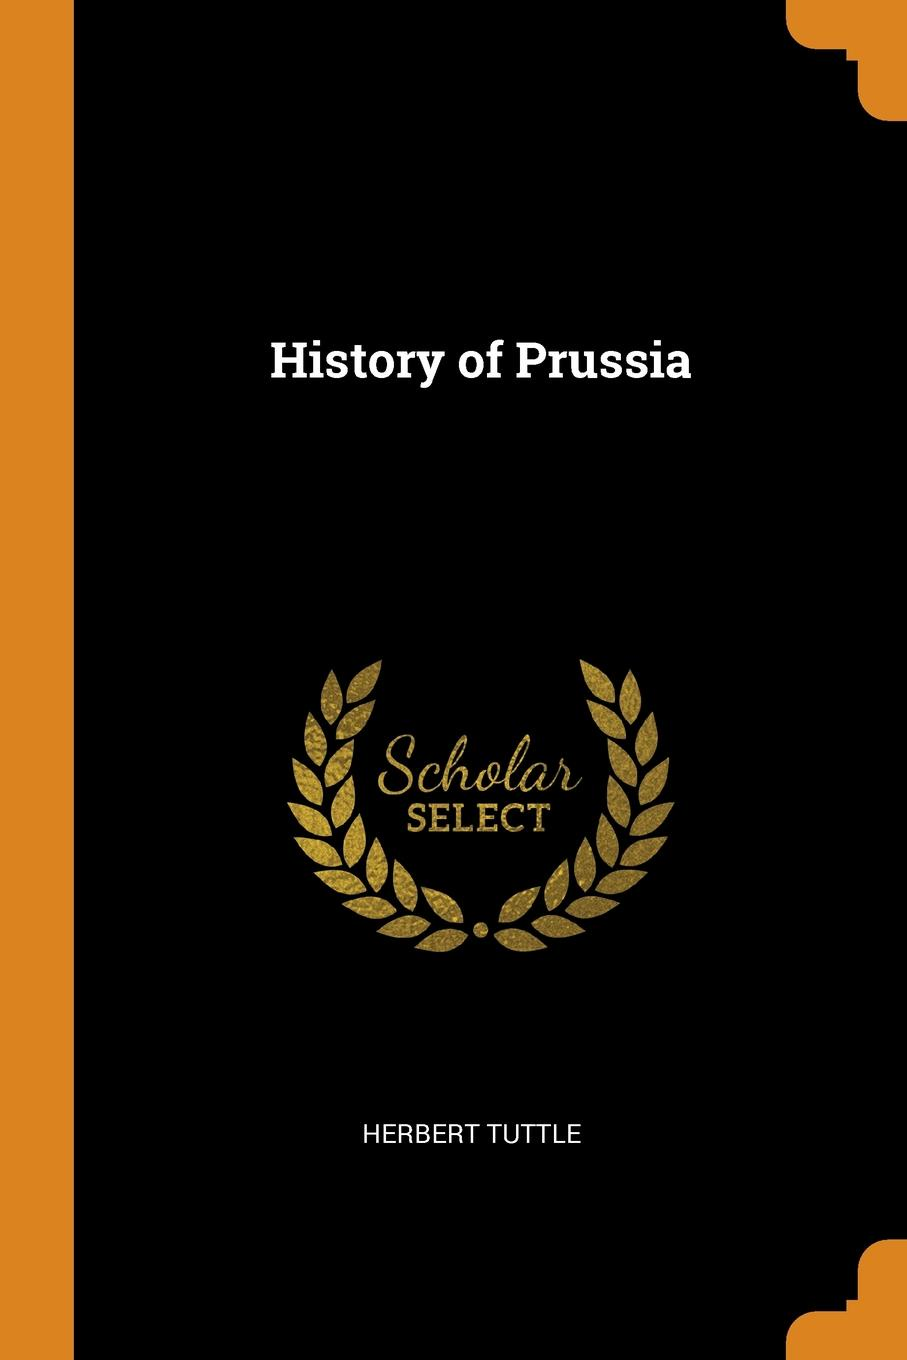 Herbert Tuttle History of Prussia charles richard tuttle the centennial northwest an illustrated history of the northwest being a full and complete civil political and military history of this great section of the united states from its earliest settlement to the present time